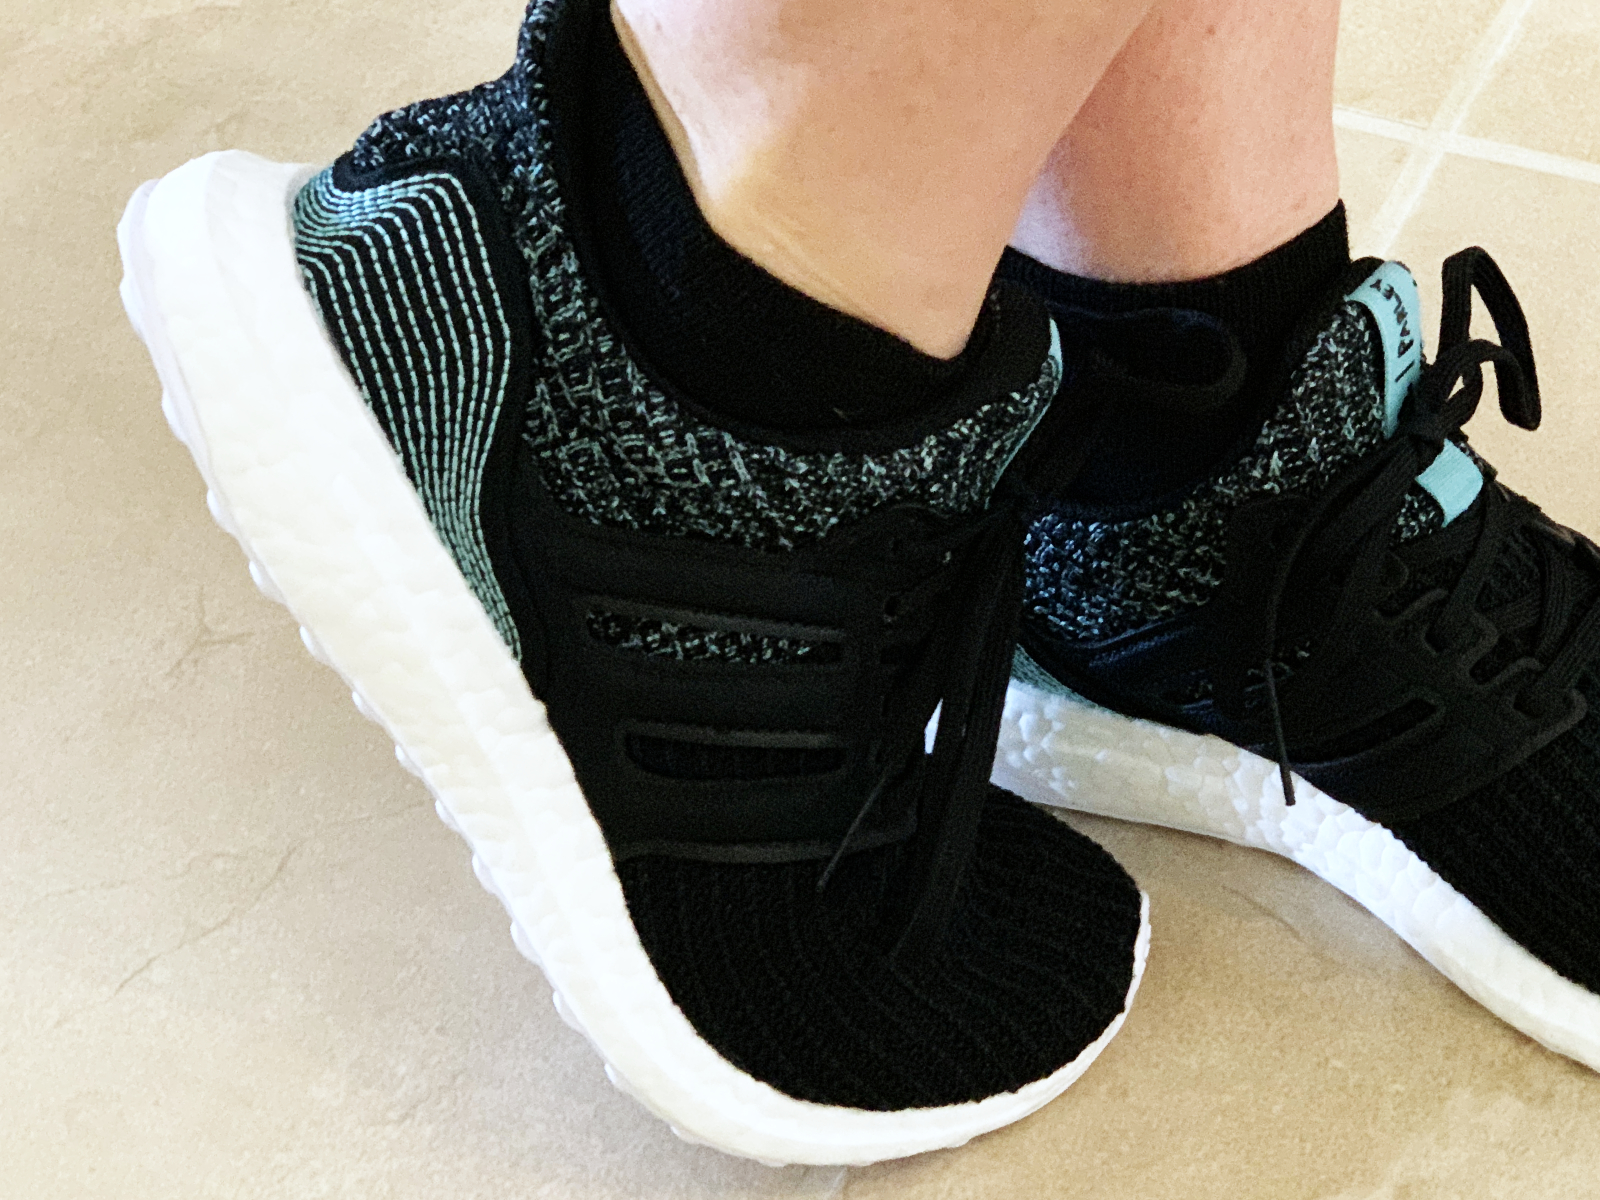 I found a pair of shoes made from recycled plastic. The Adidas Parley Ultra Boost. | For Animals For Earth